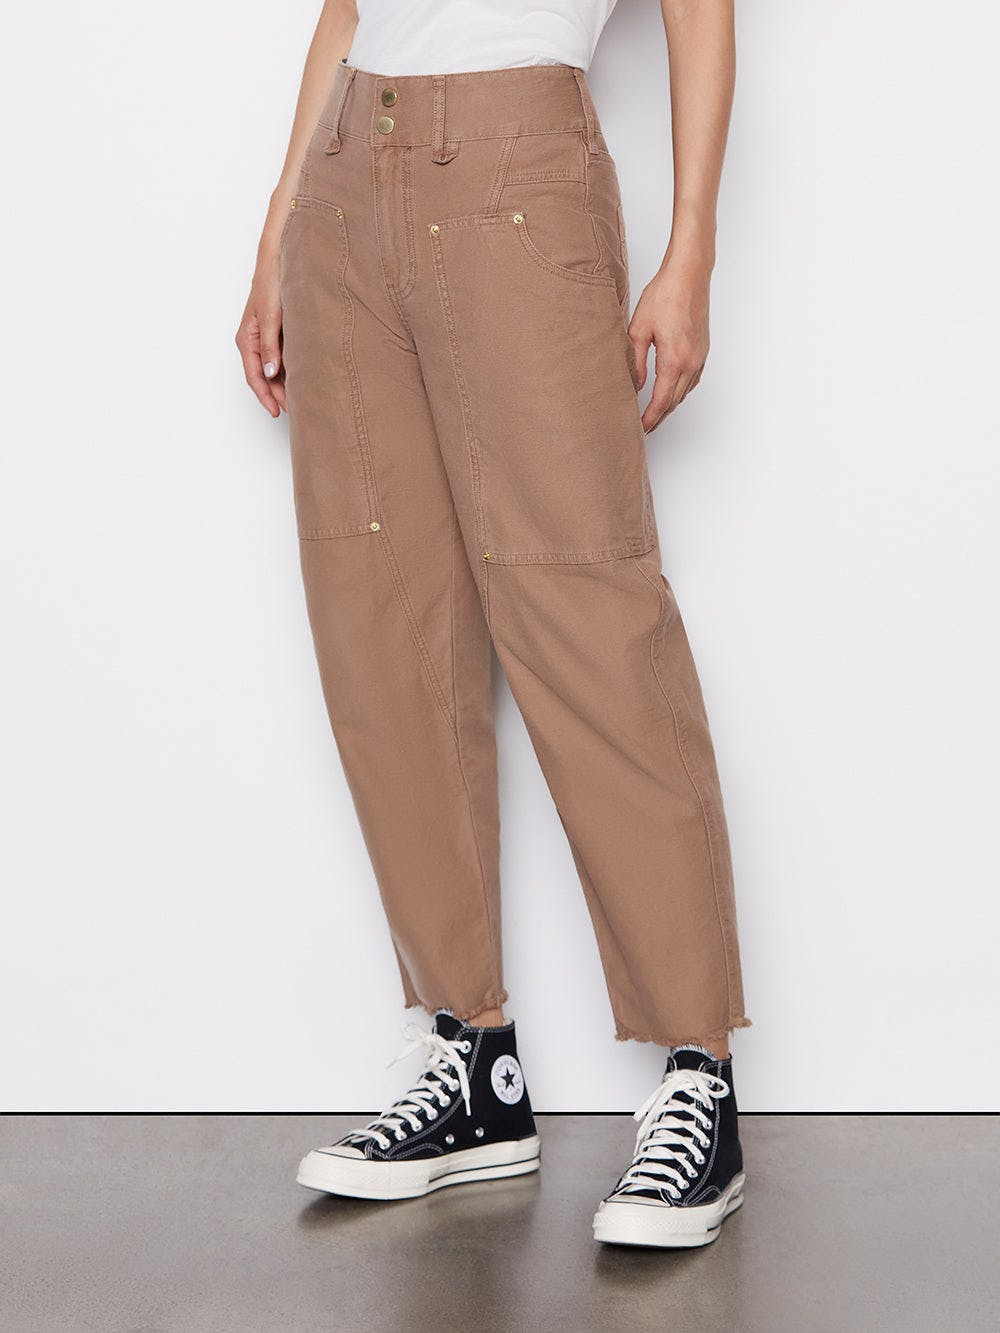 pants side view